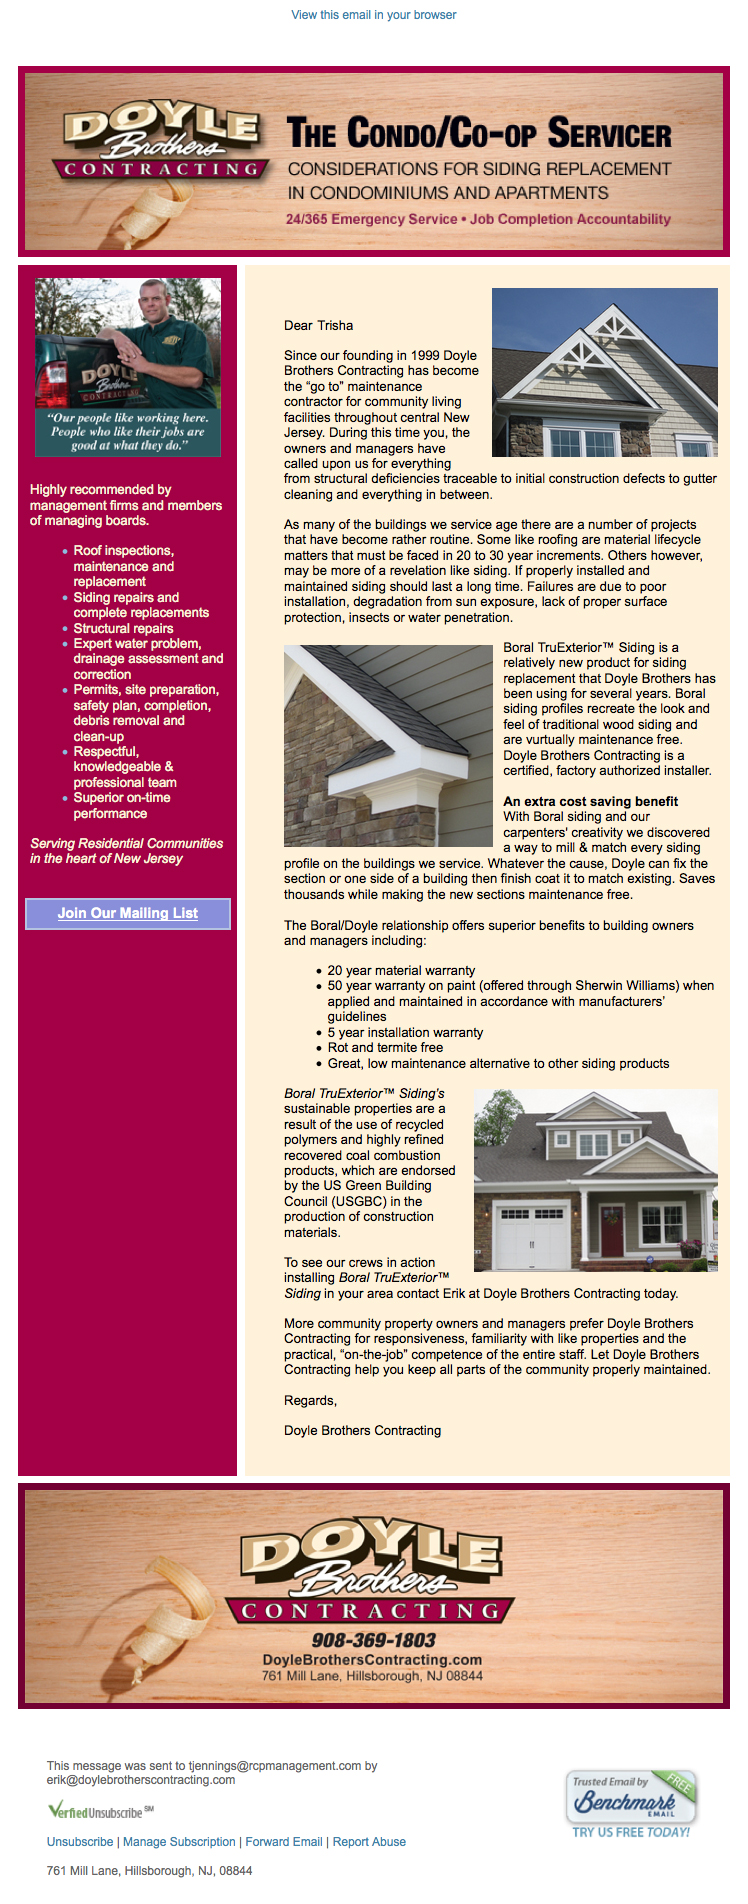 Doyle Brothers Construction email 09.jpg